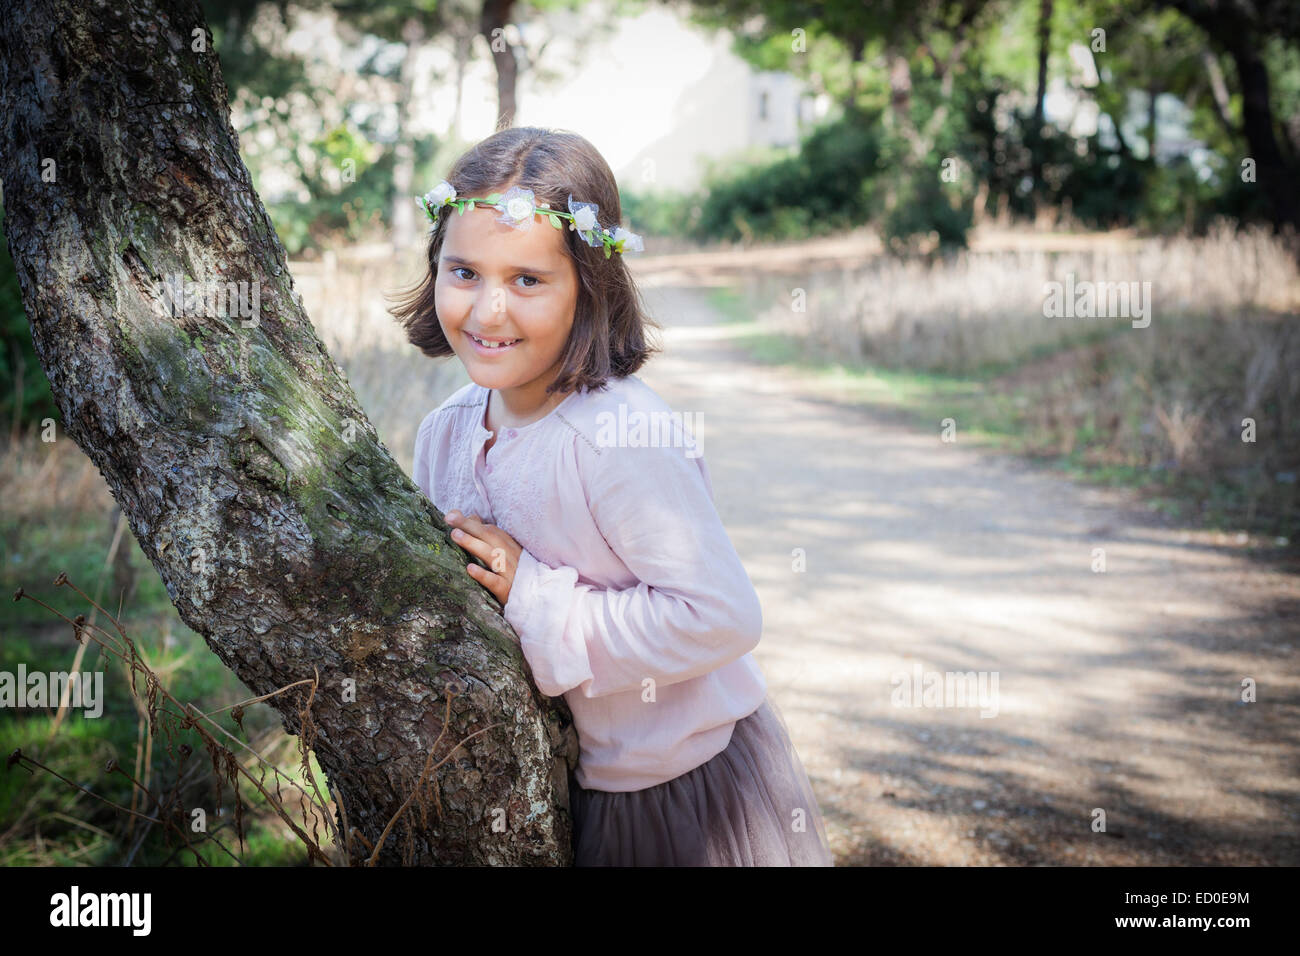 Portrait of girl (6-7) in garland leaning against tree trunk - Stock Image